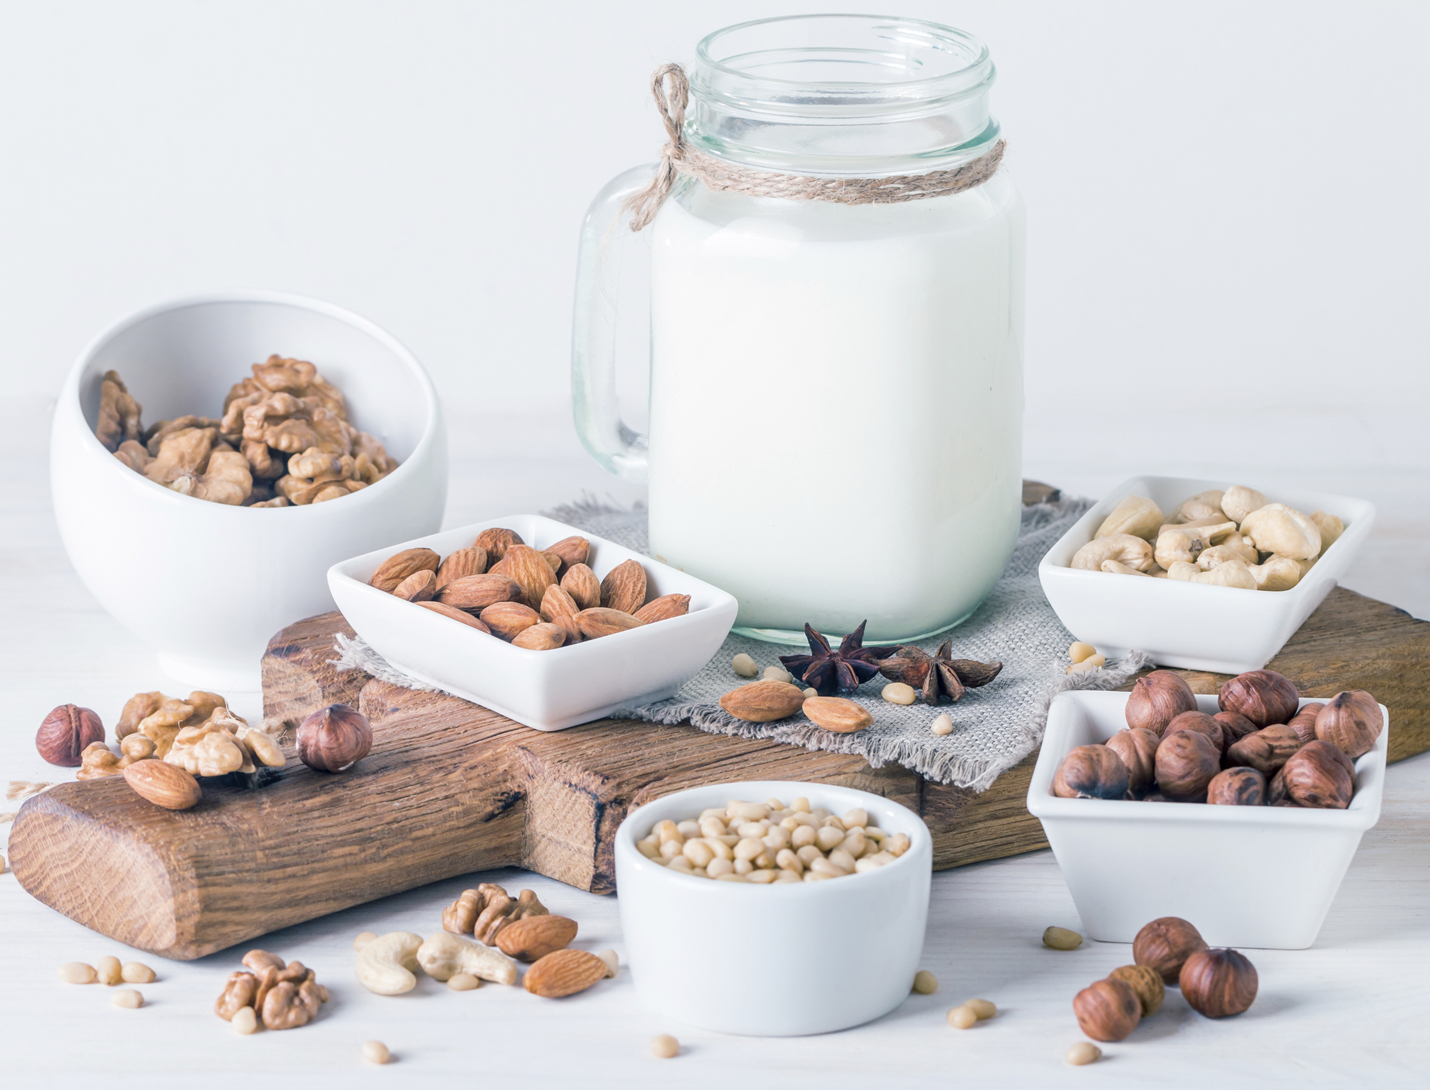 Nuts and Nut Milk for Protein